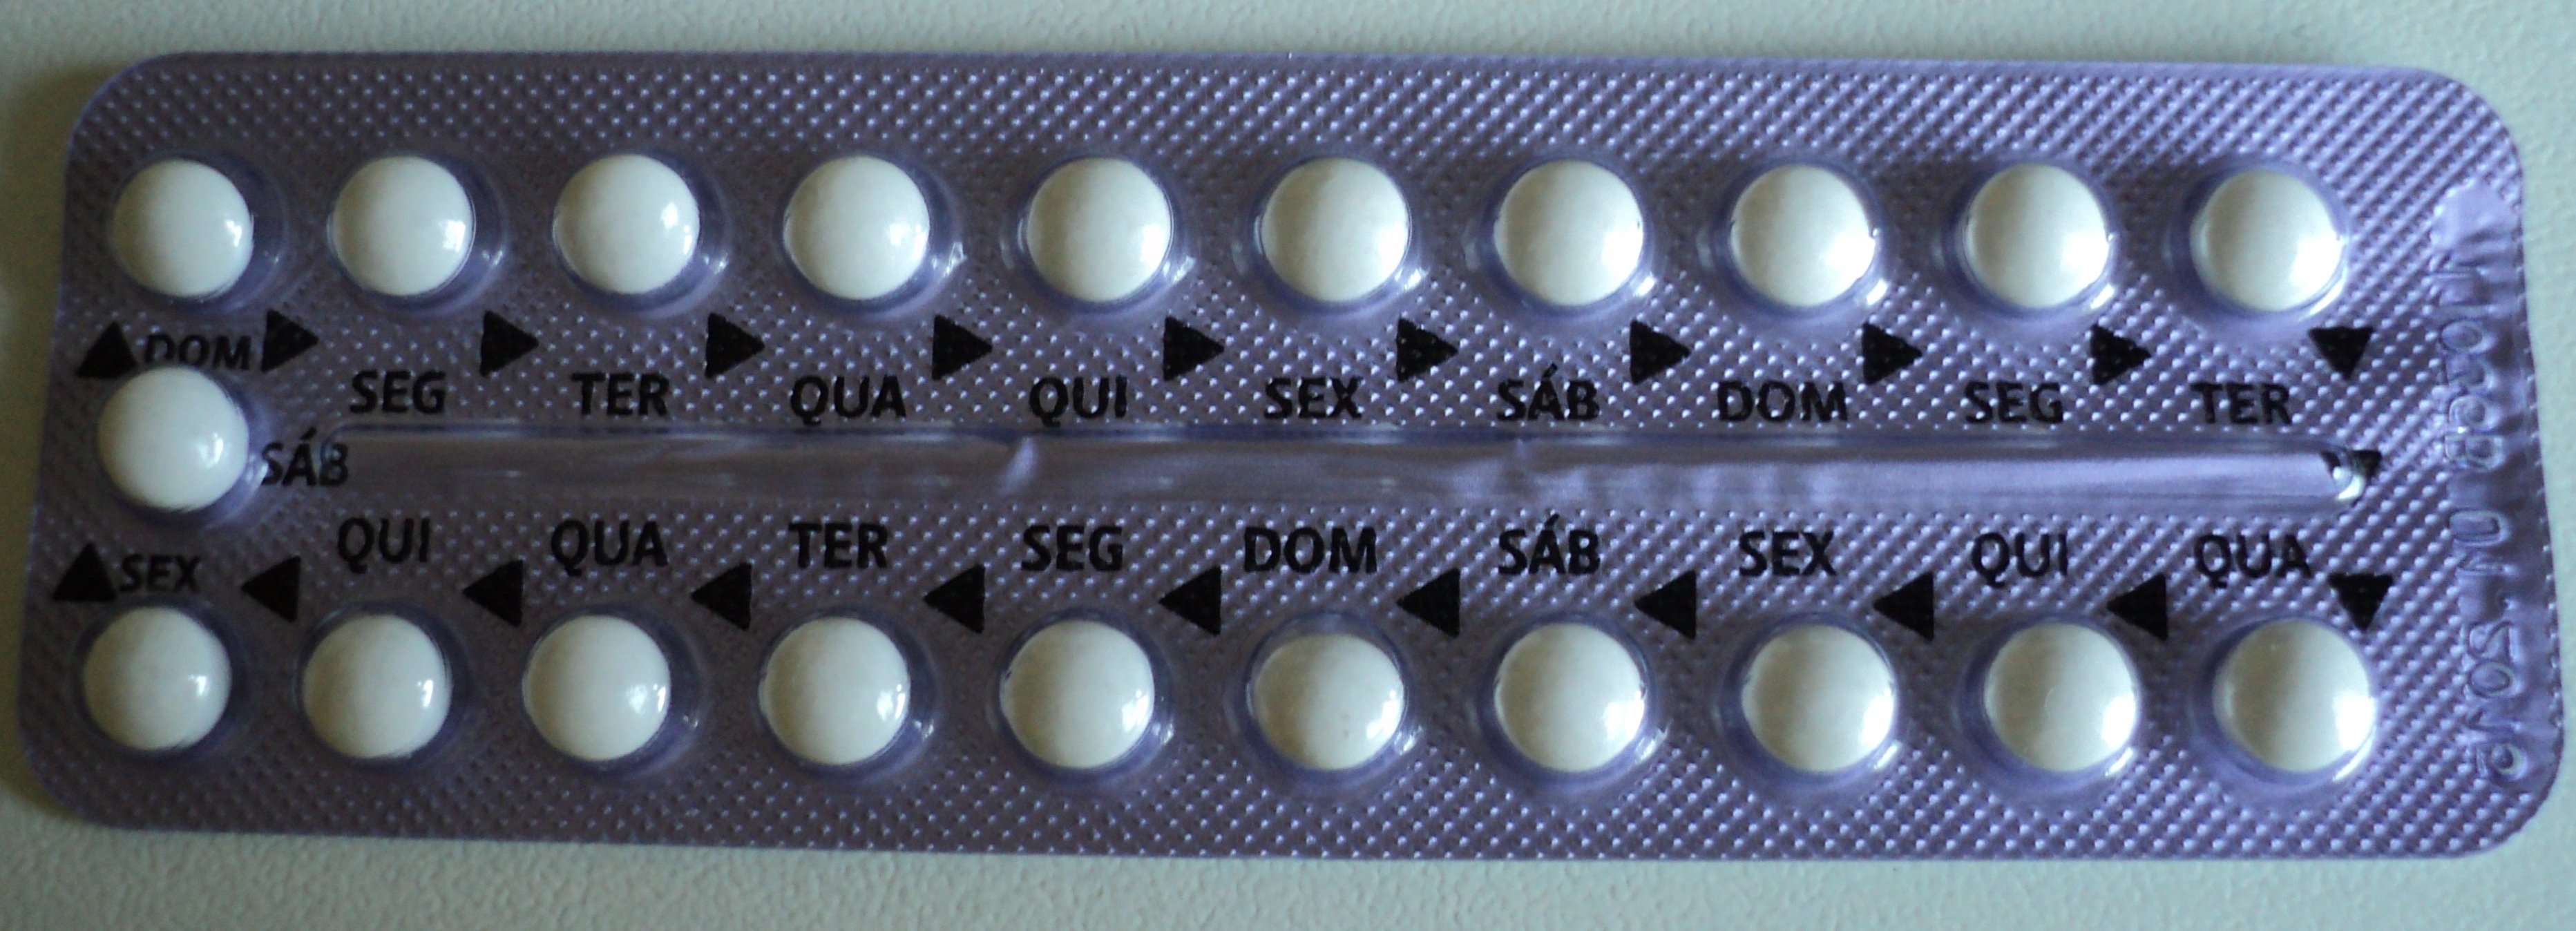 how to use today contraceptive pills